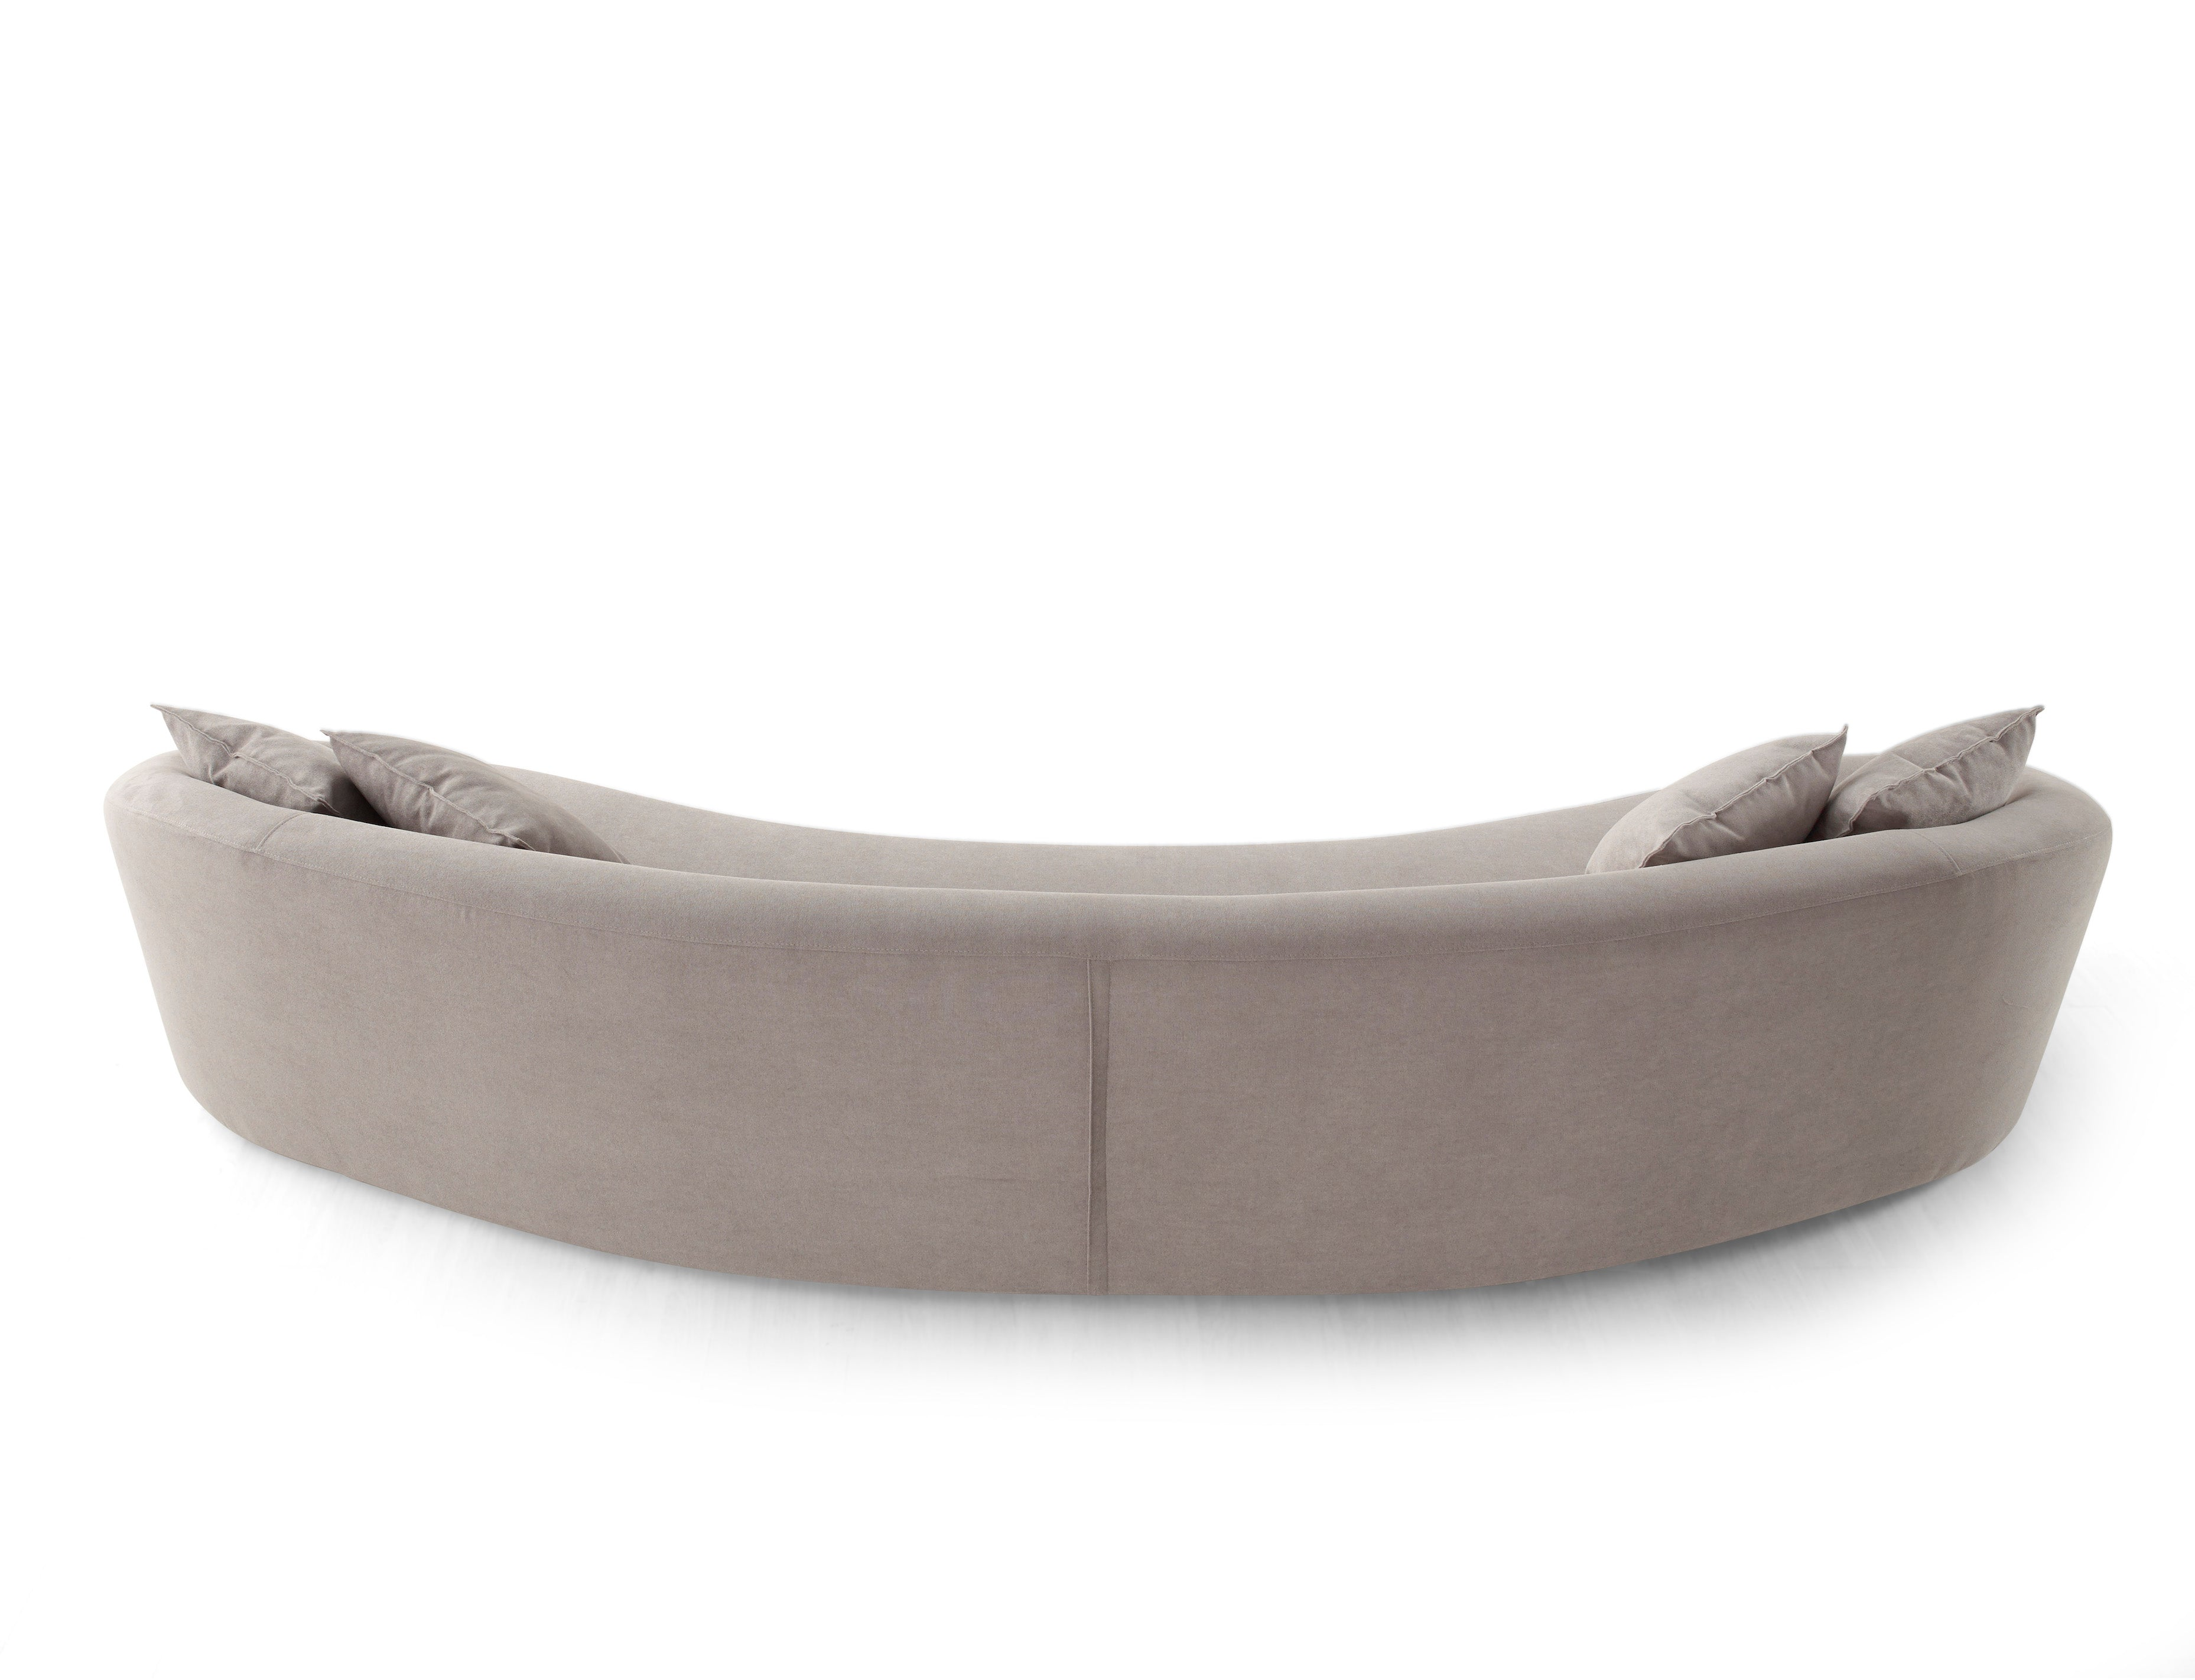 Stone curved sofa by Studio Feeling - Kelly Christian Designs